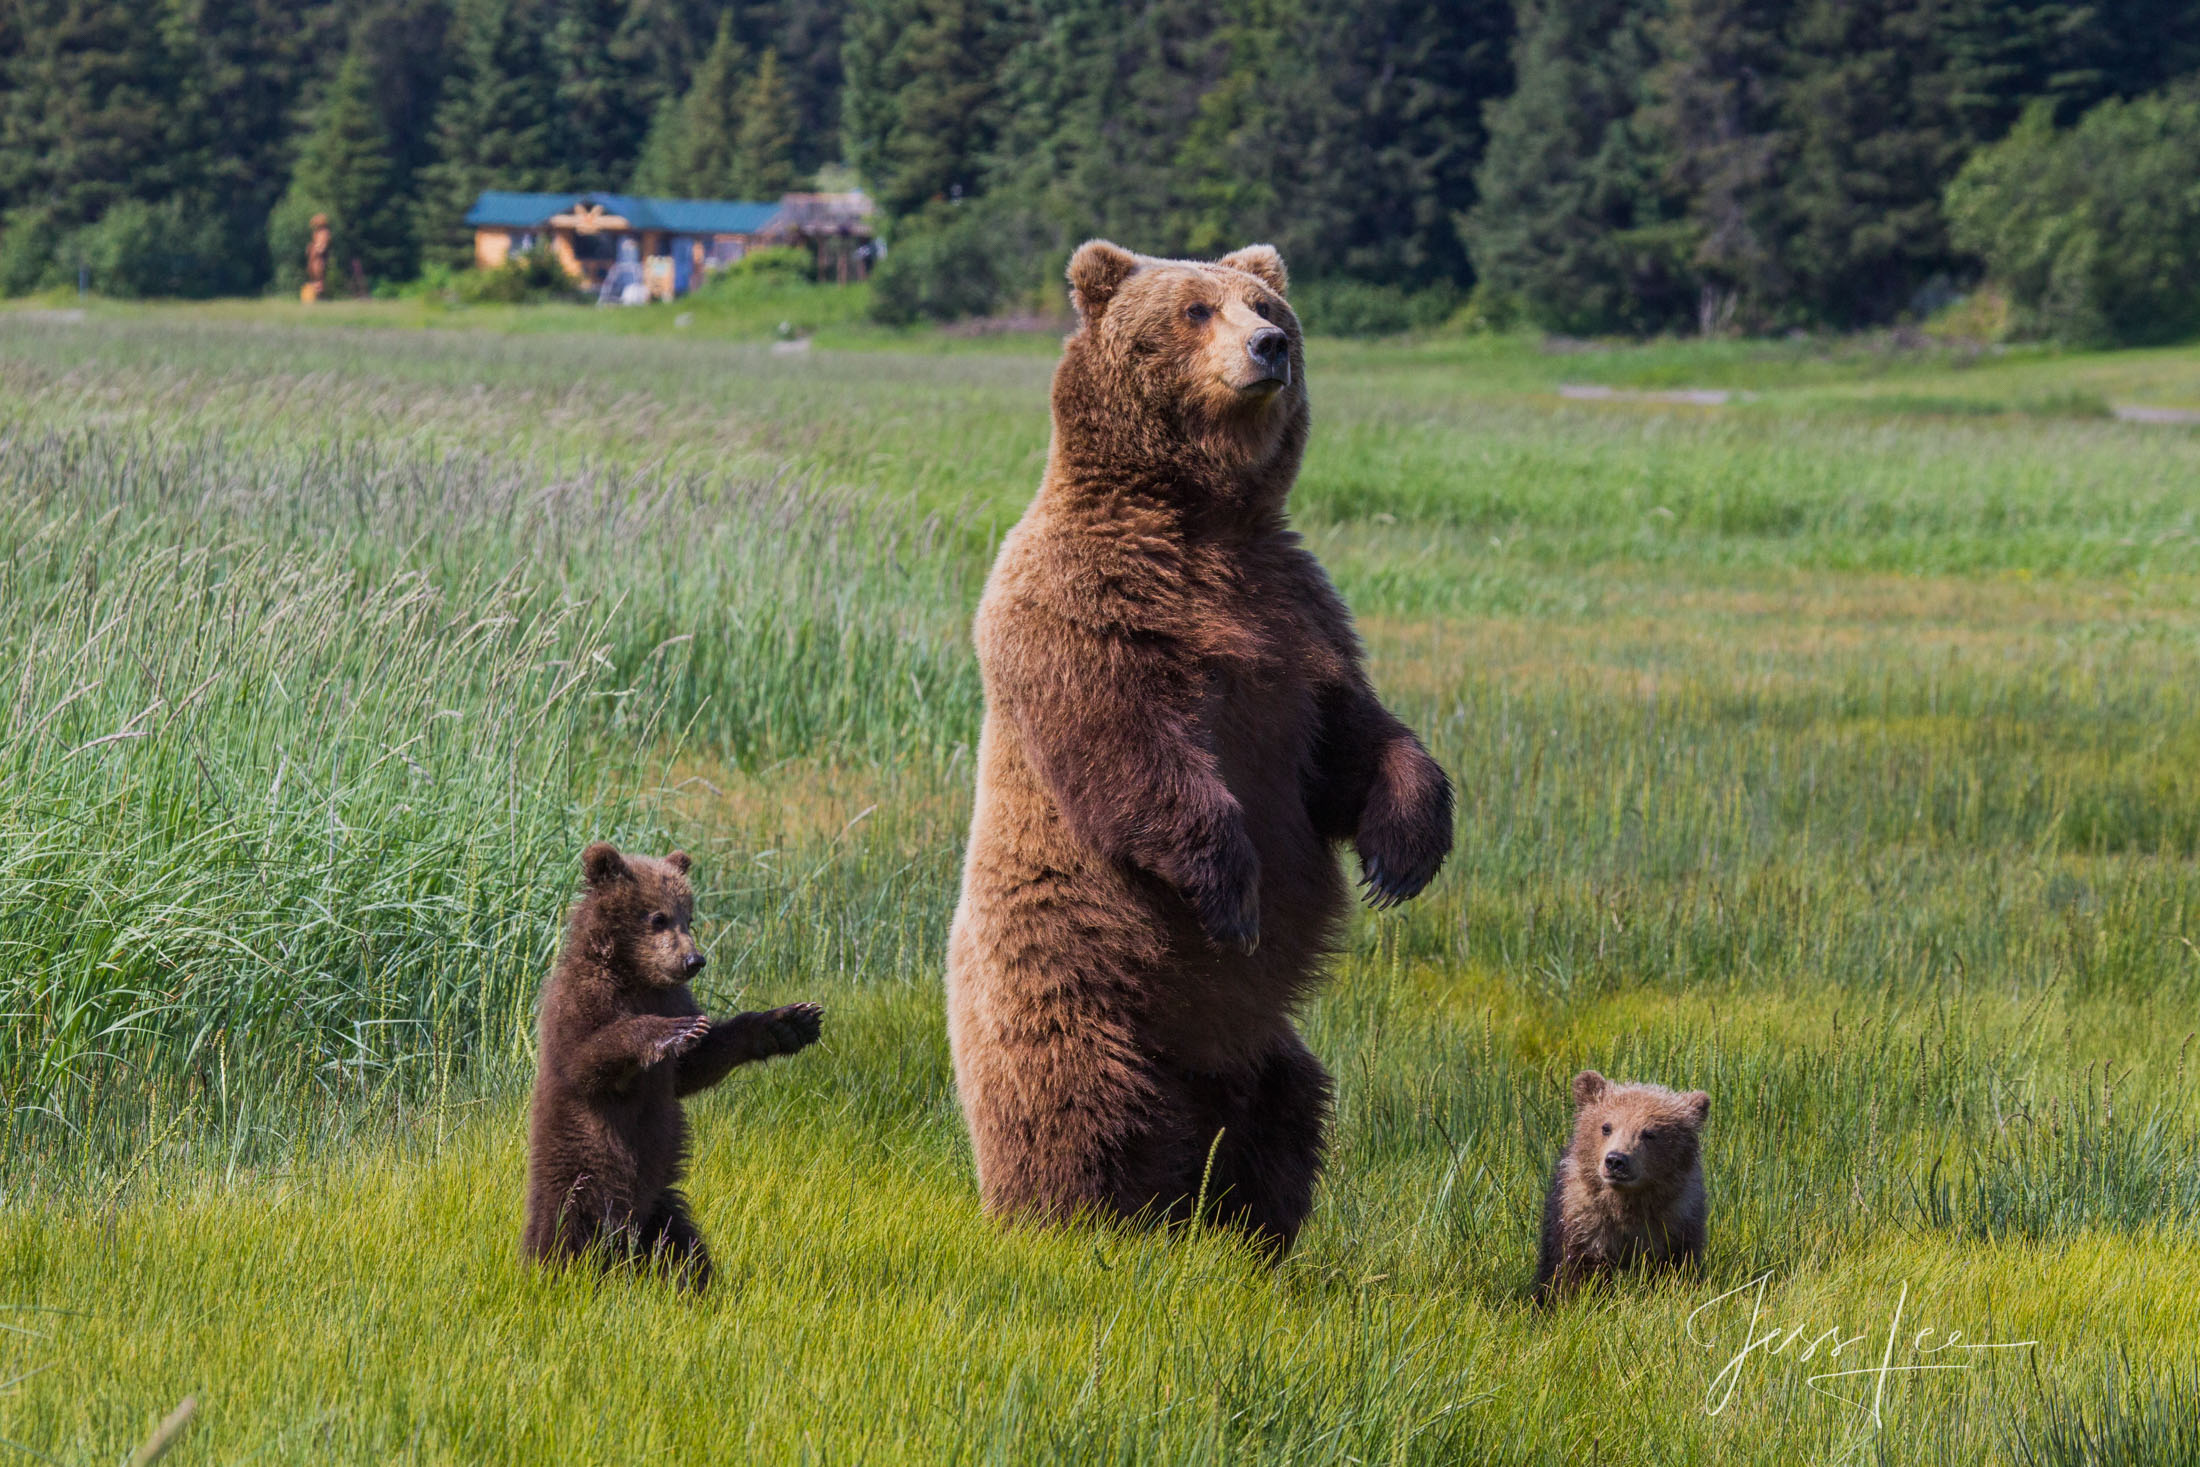 Grizzly bear mother and cubs standing tall in Alaskan prairie.